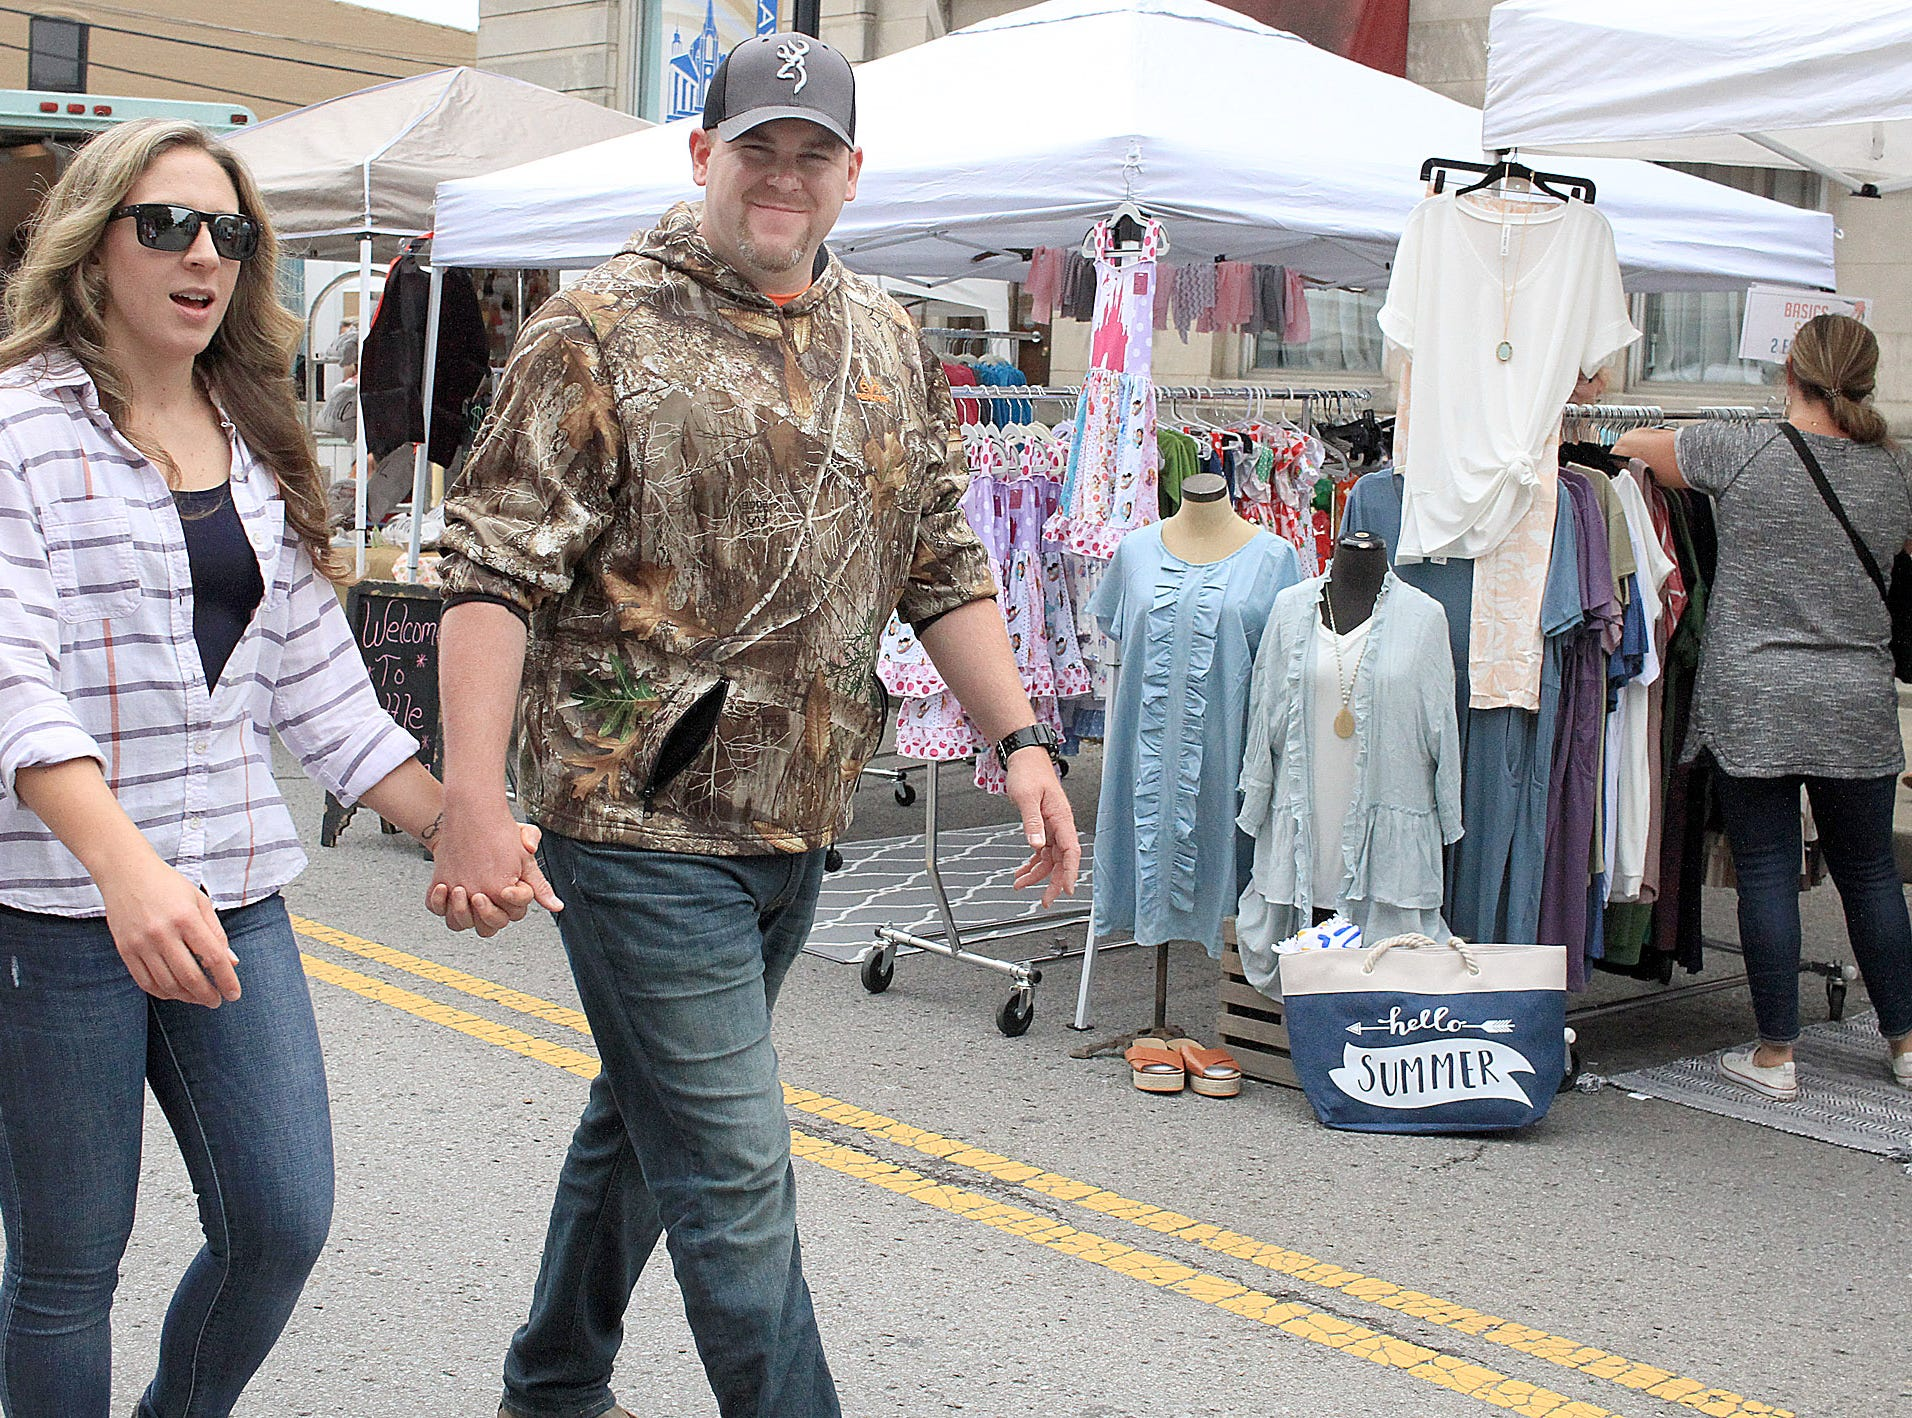 Kristine Friedman and James Petre hold hands as the walk the Fashion Crawl in Gallatn, TN on Saturday, Nay 11, 2019.